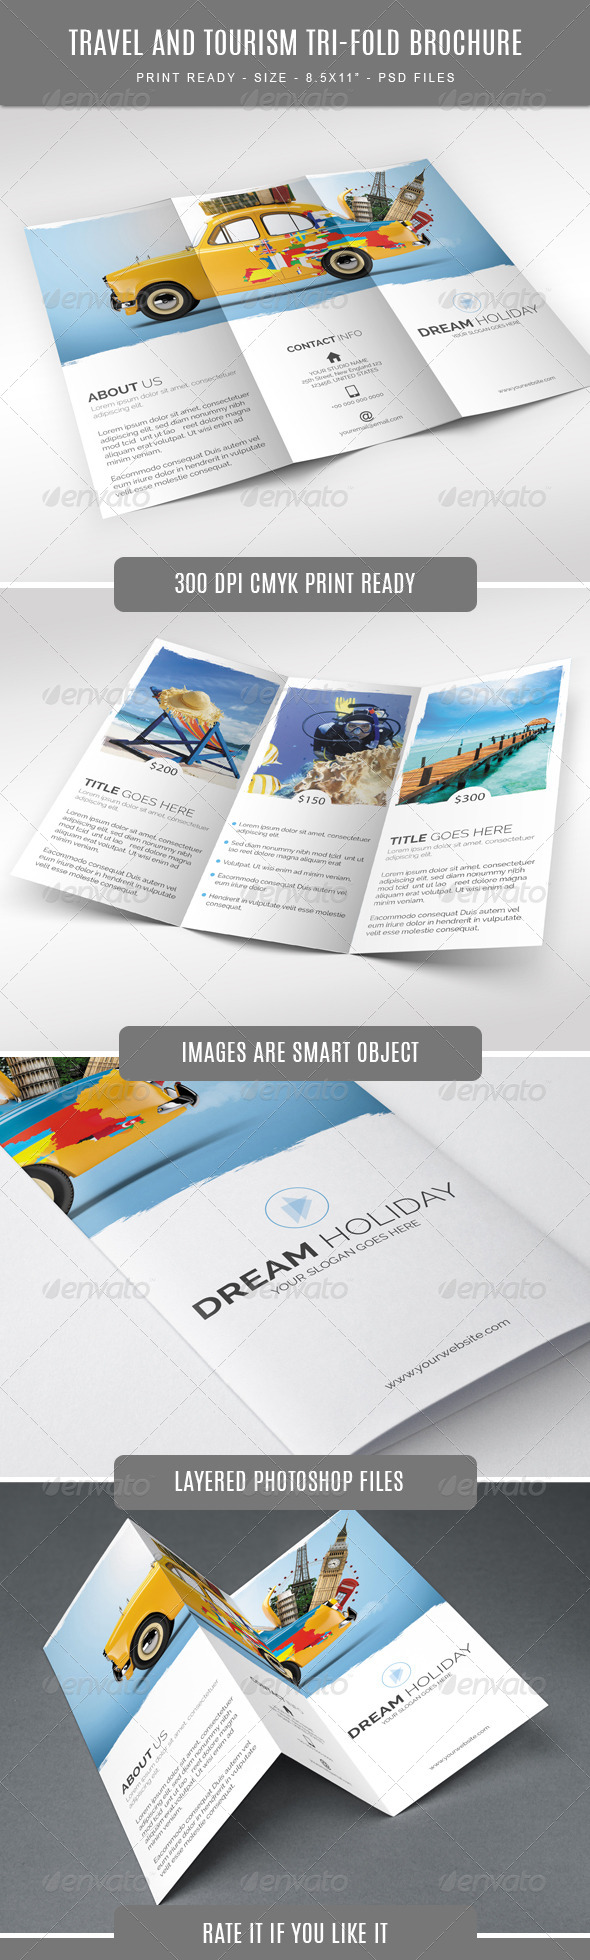 GraphicRiver Travel and Tourism Trifold Brochure 7751881